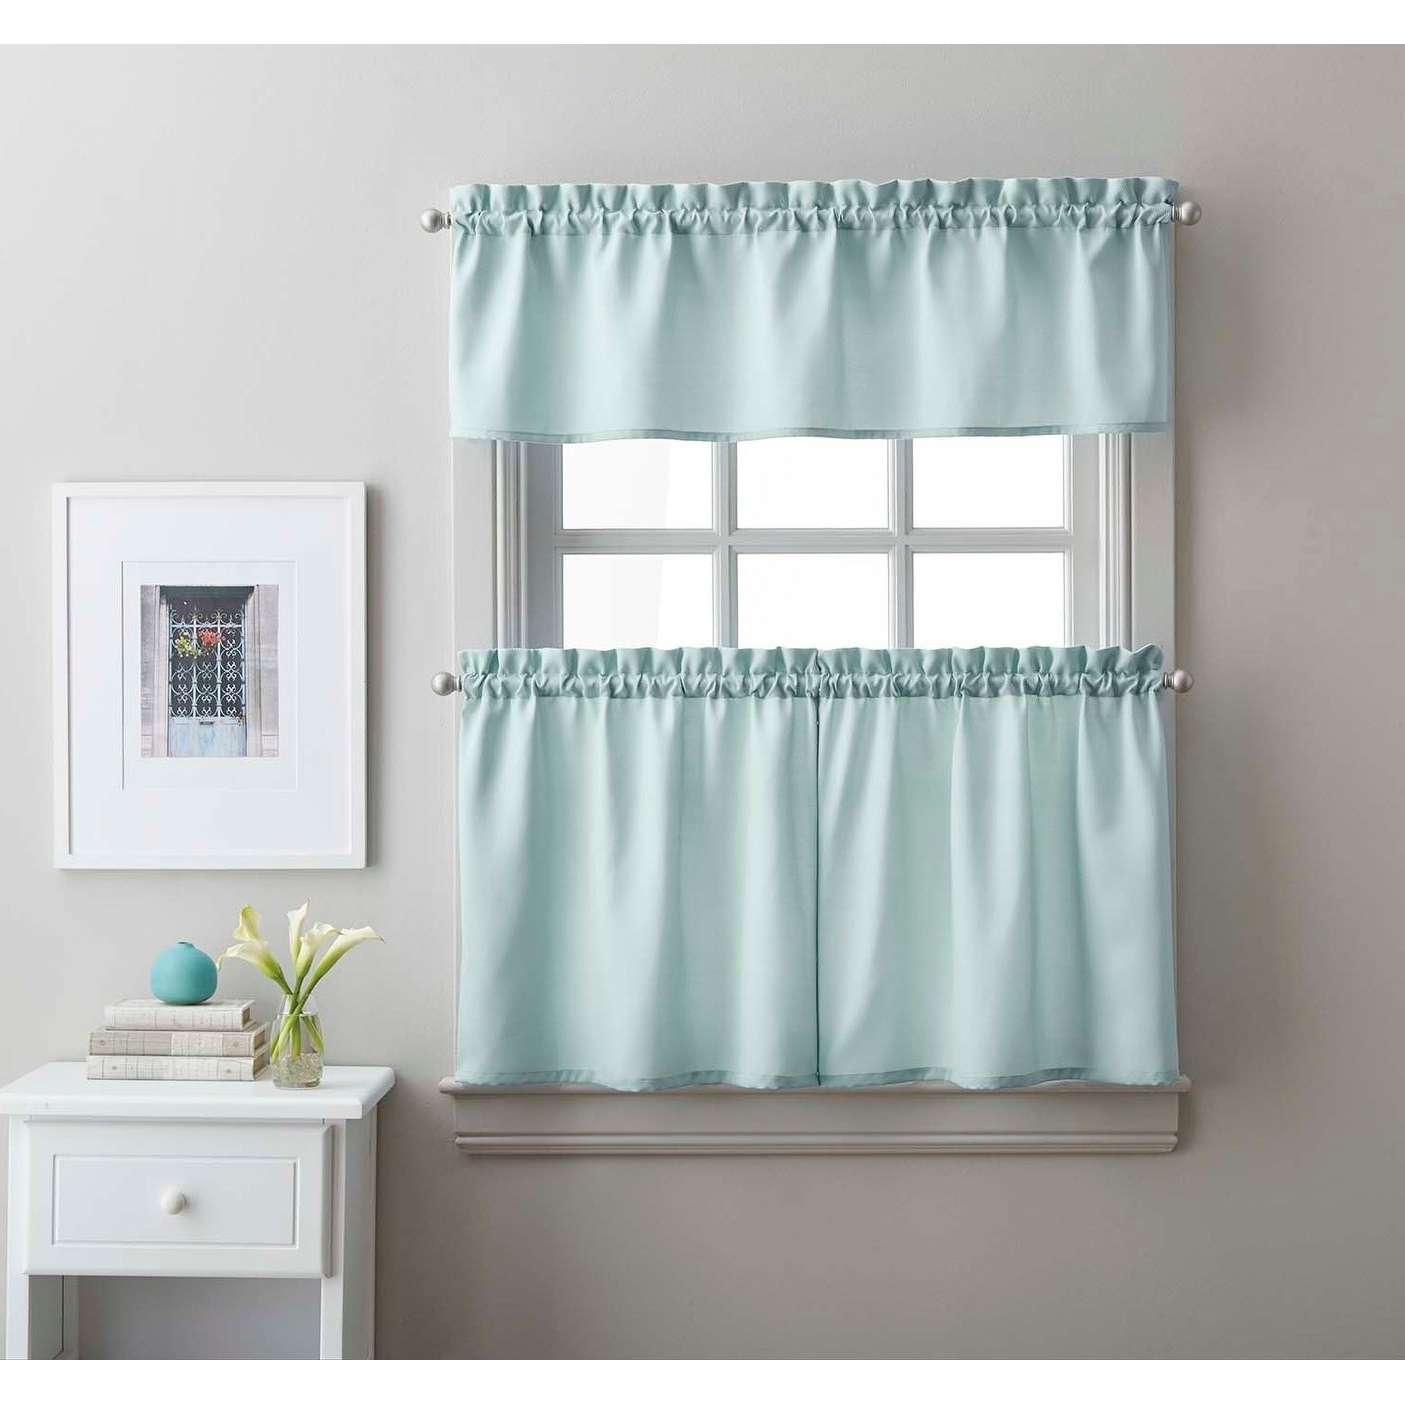 Most Current Twill 3 Piece Kitchen Curtain Tier Set Throughout Microfiber 3 Piece Kitchen Curtain Valance And Tiers Sets (Gallery 10 of 20)